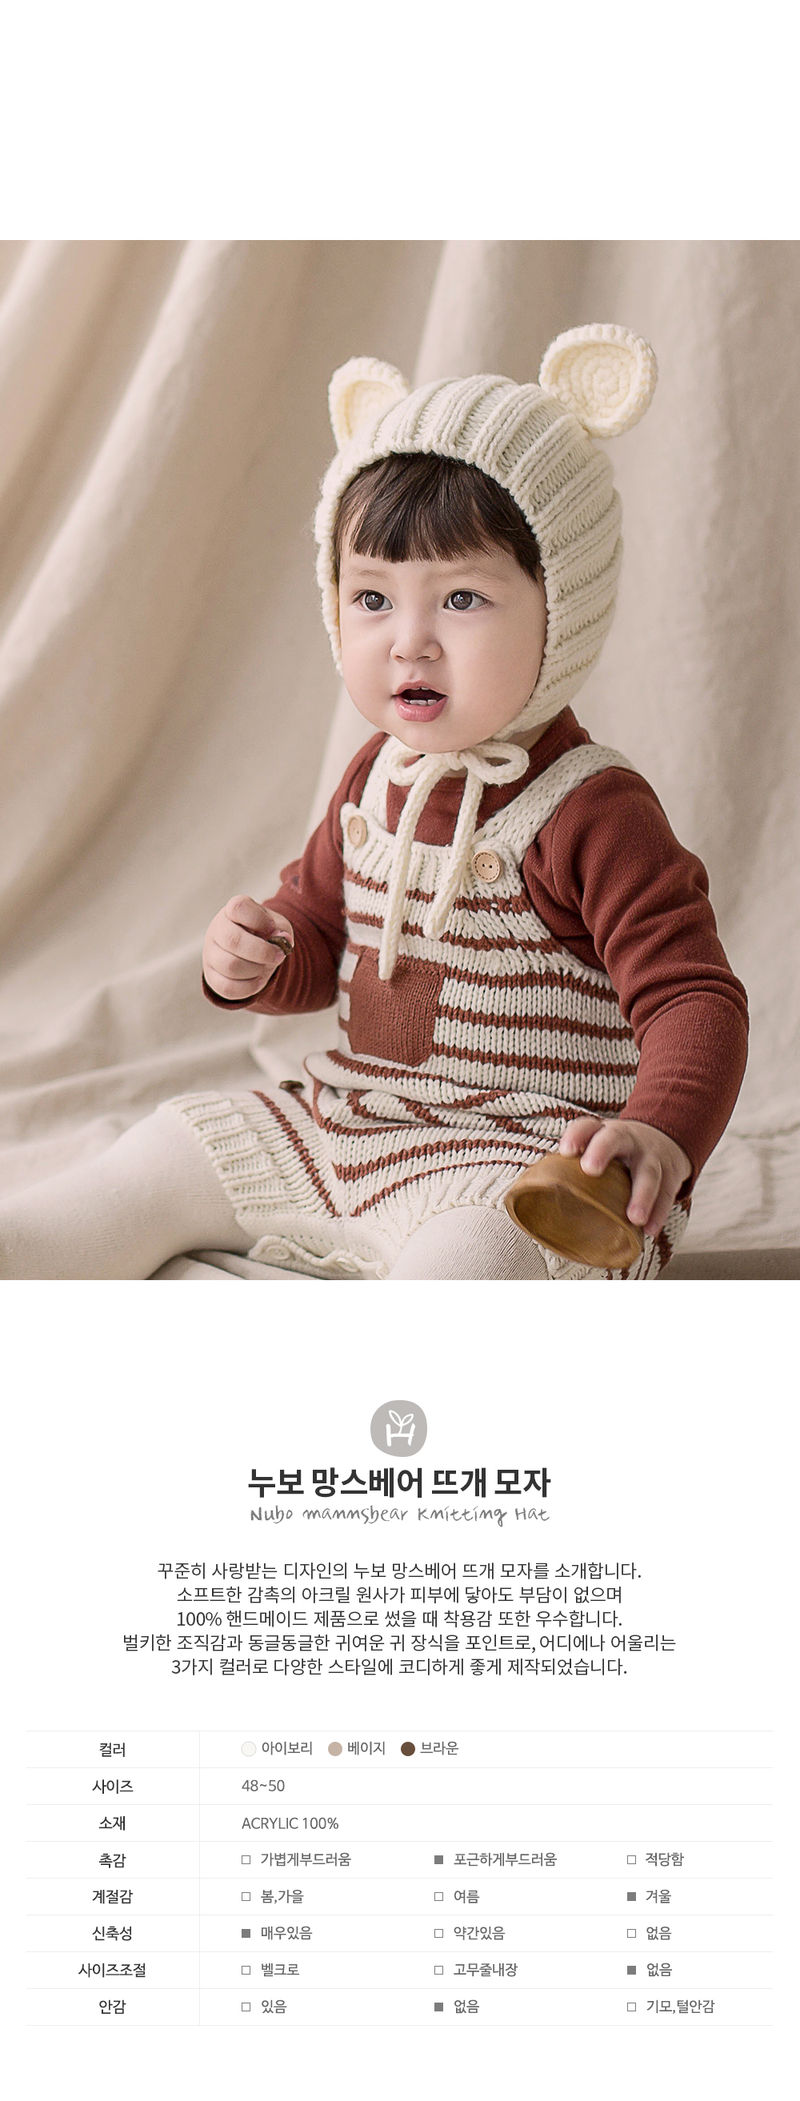 HAPPY PRINCE - Korean Children Fashion - #Kfashion4kids - Nubo Mannsbear Knitting Bear